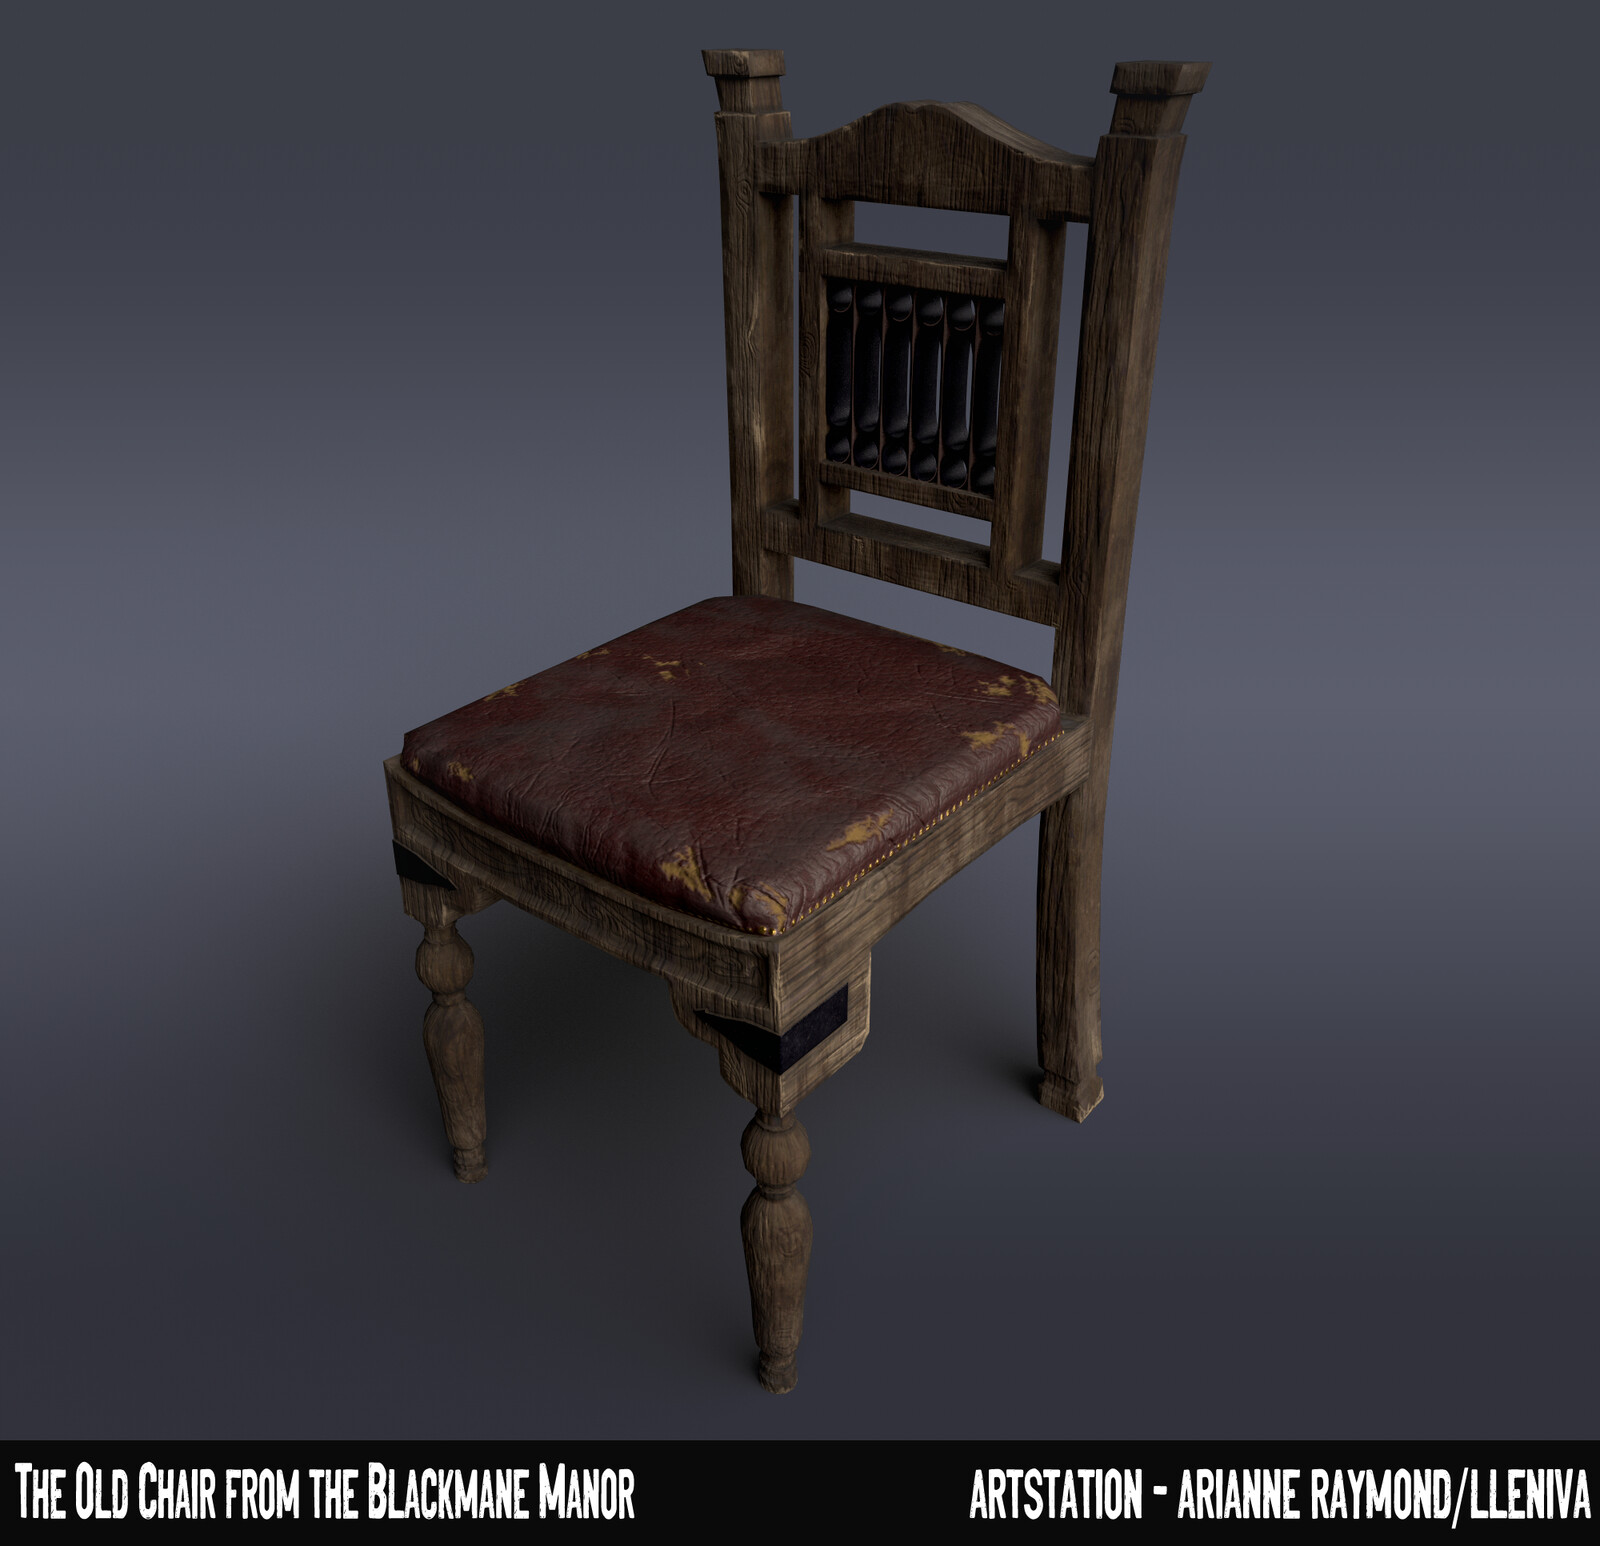 The Old Chair from the Blackmane Manor